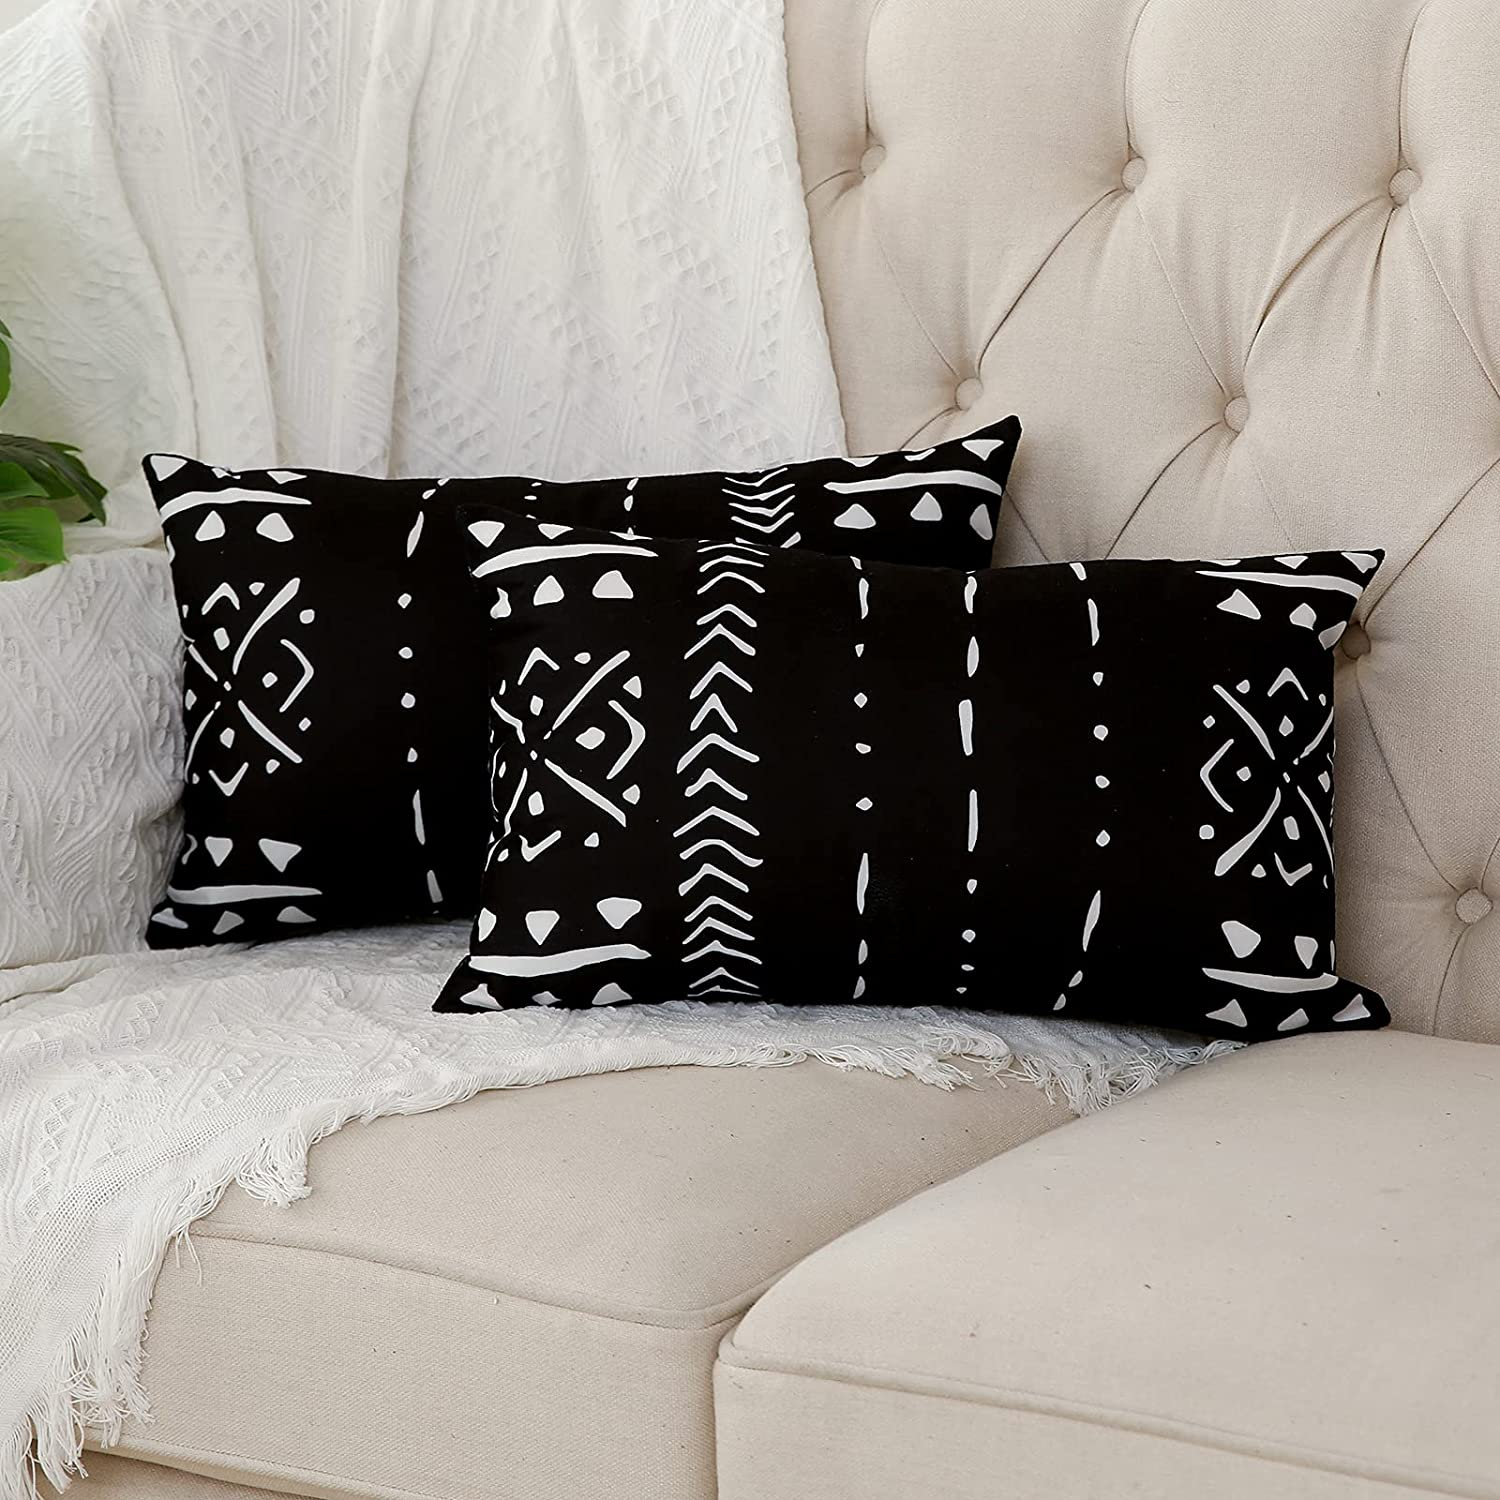 Kiuree Set of 2 Black and White Pillow Covers 12 x 20 inches Boho Aztec Tribal Polyester Blend Lumbar Decorative Throw Pillow Covers for Sofa Couch Bed Decor(Black)